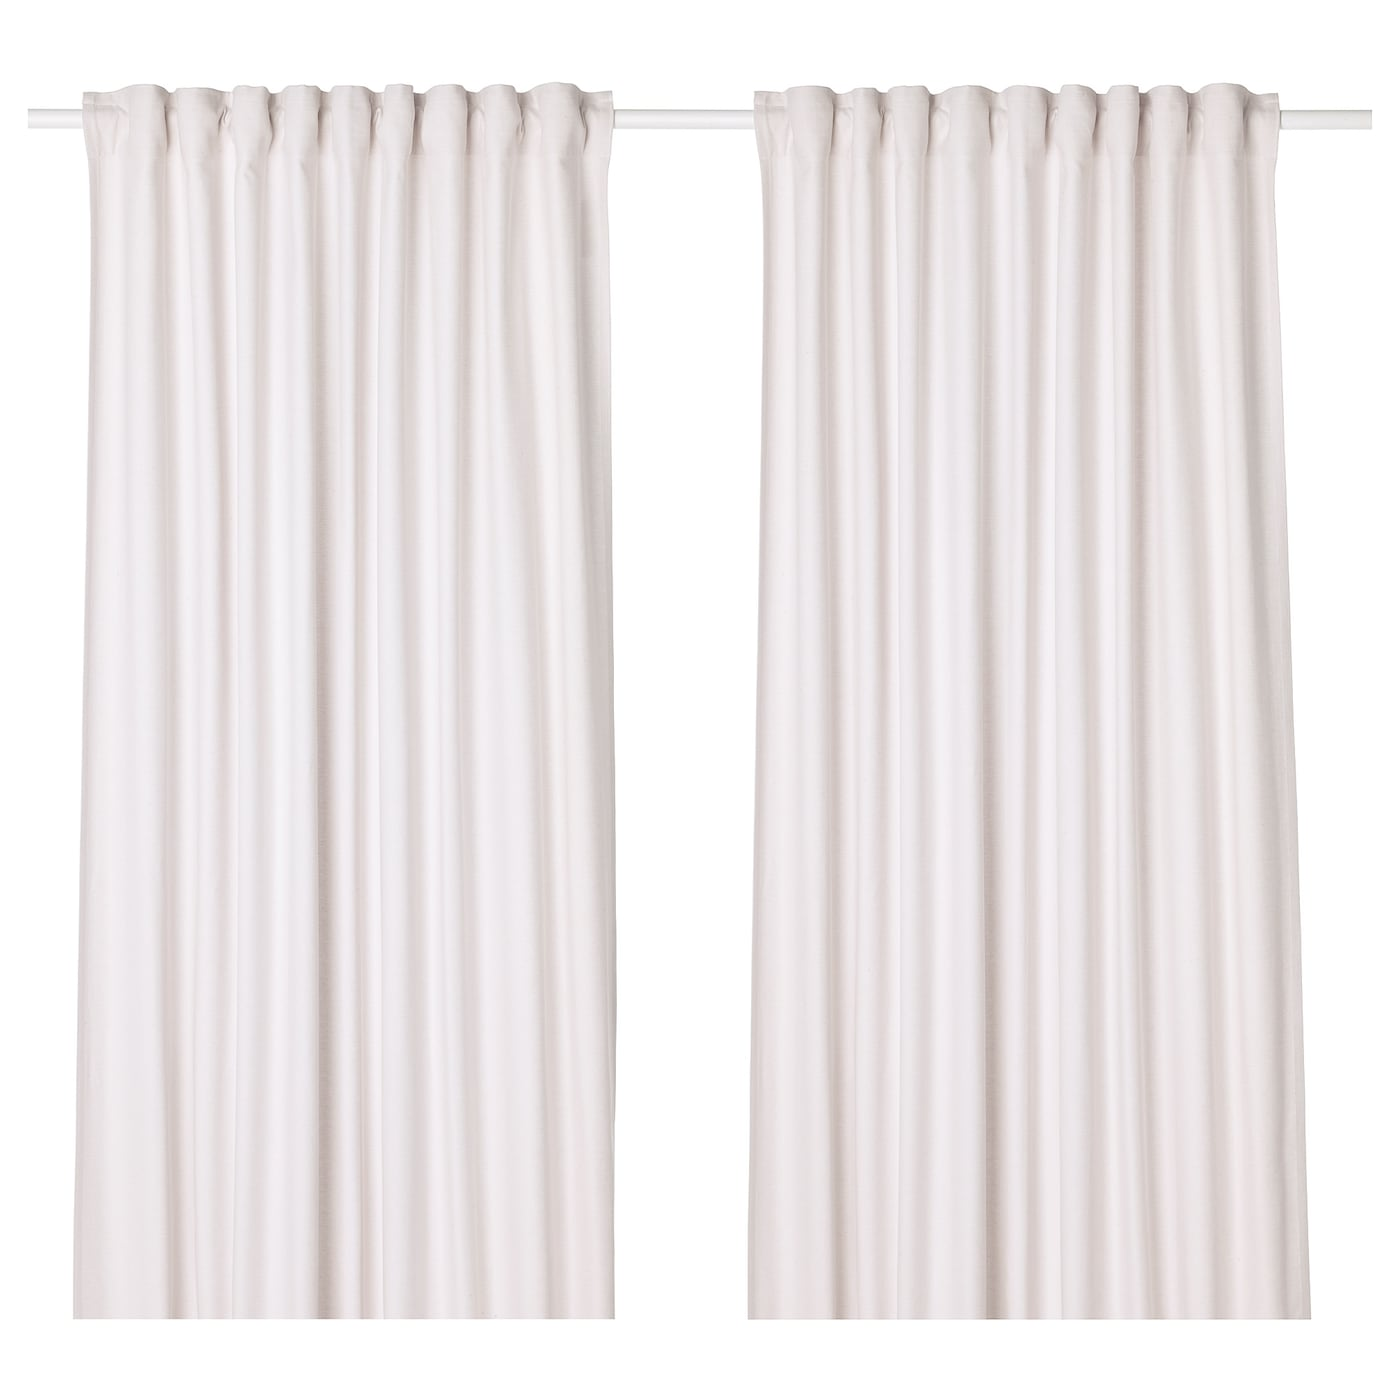 IKEA TIBAST curtains, 1 pair The curtains can be used on a curtain rod or a curtain track.